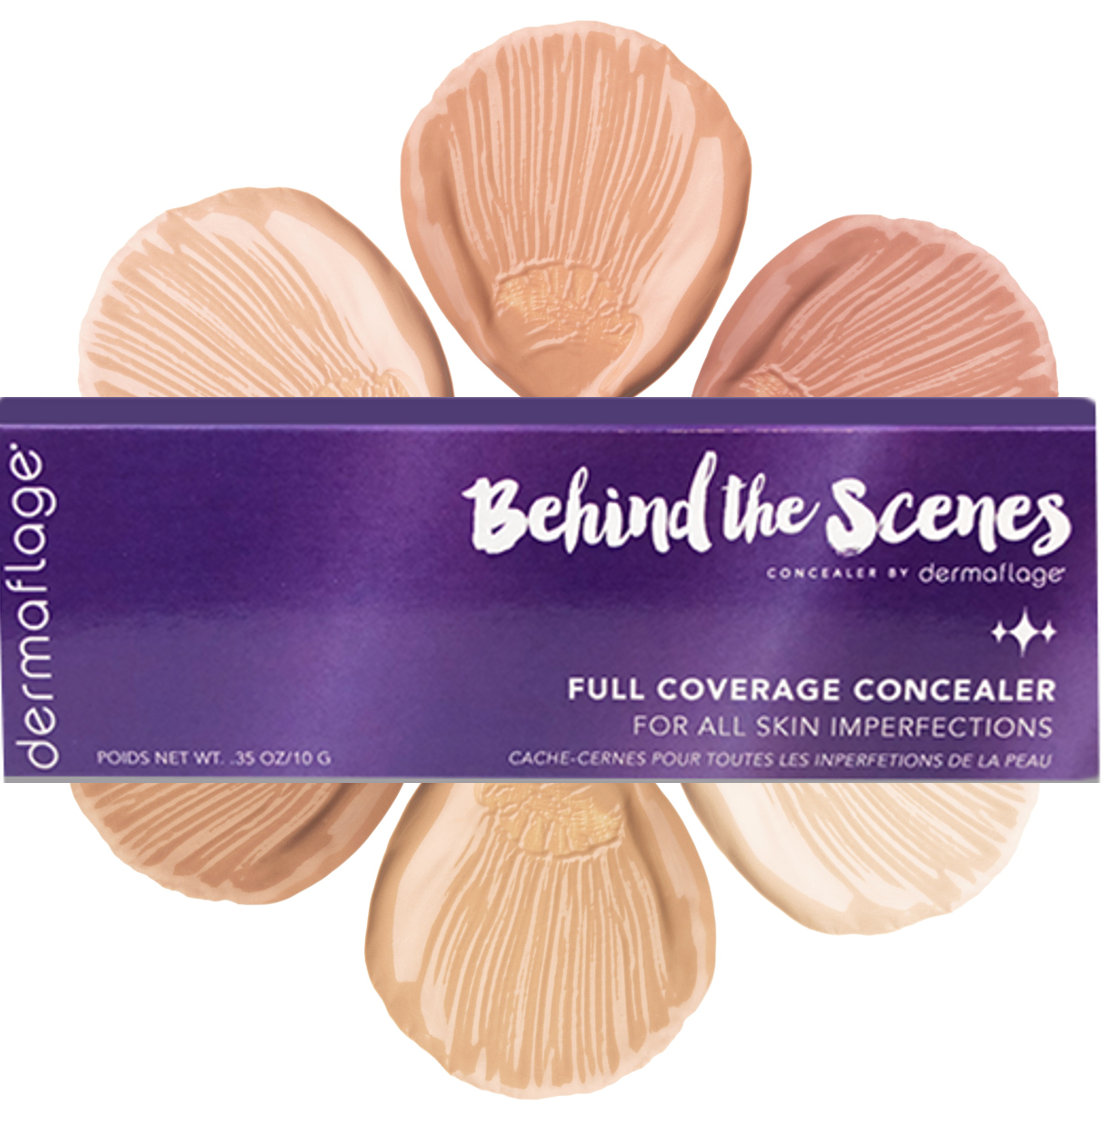 the best concealer makeup for acne